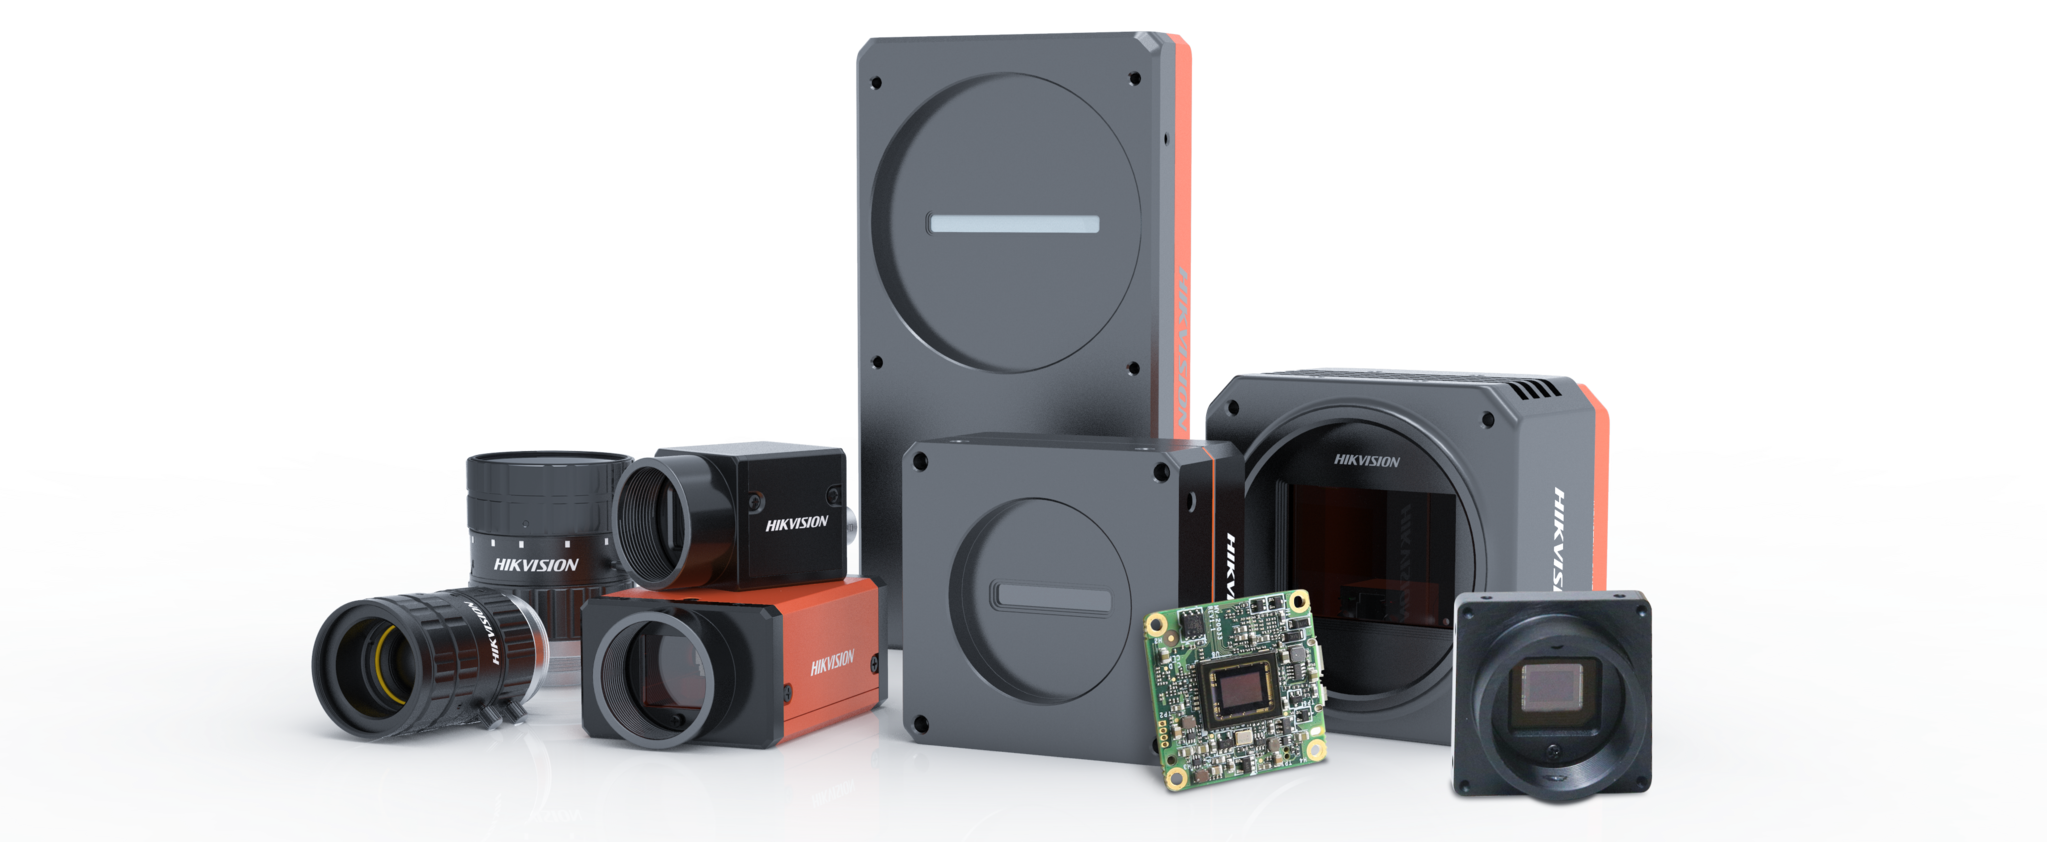 Machine vision overview